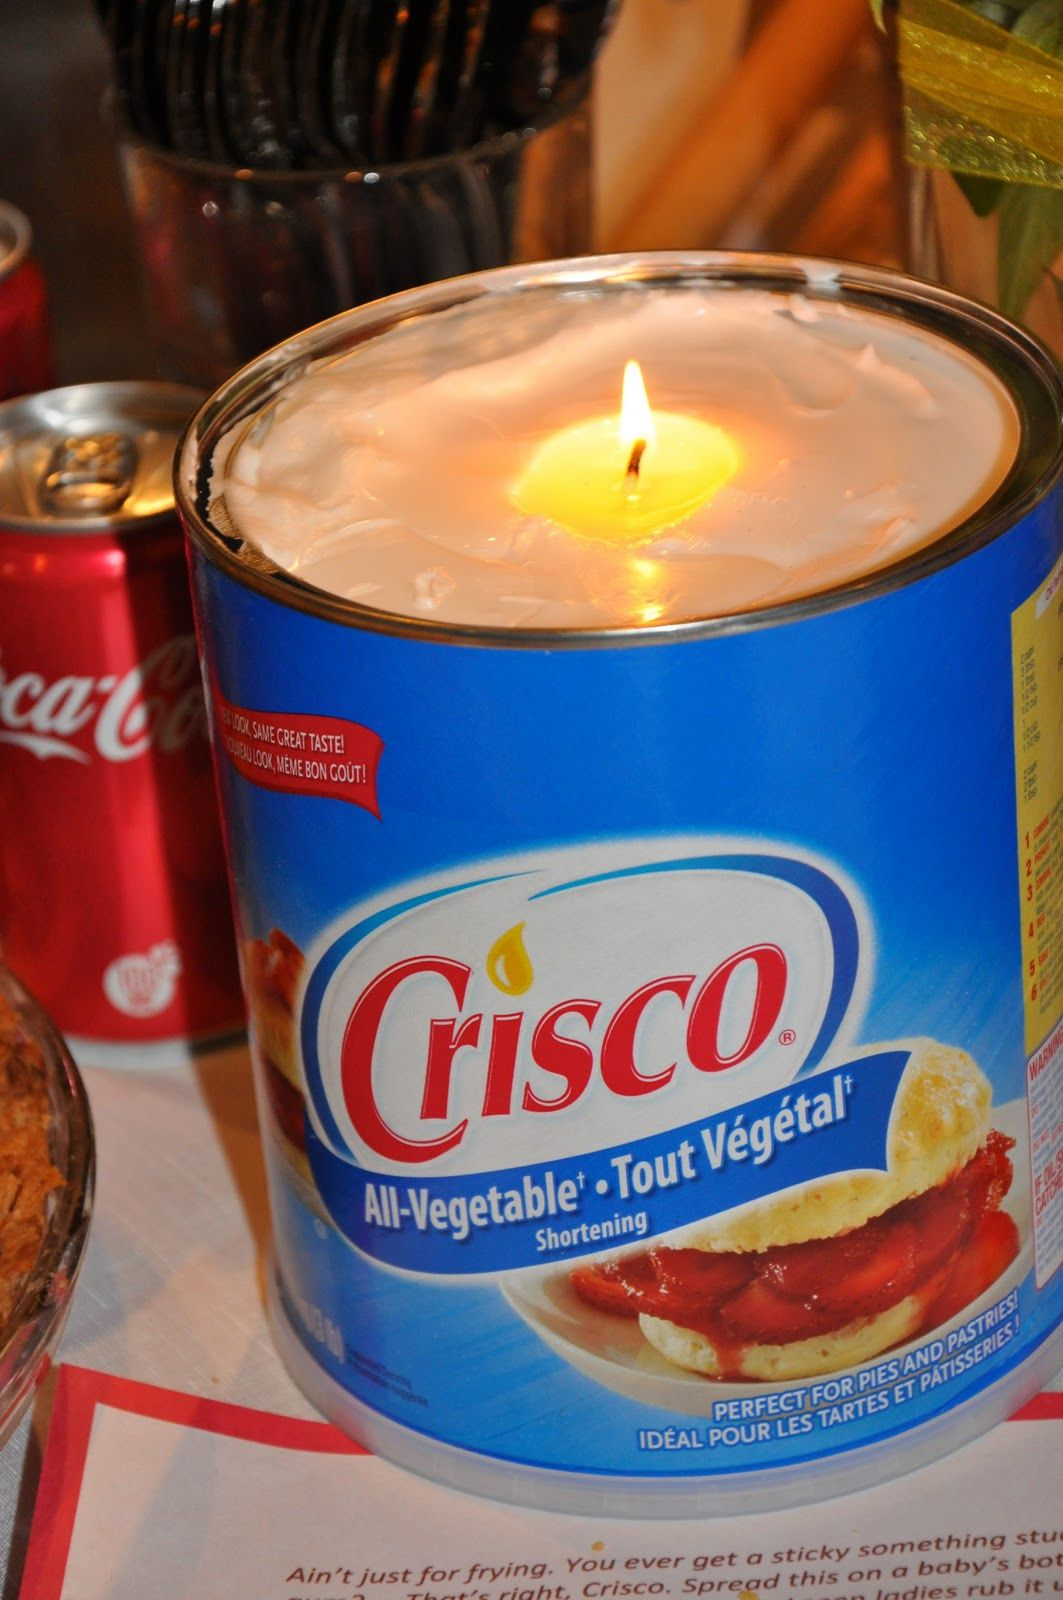 Emergency survival candle from a can of Crisco